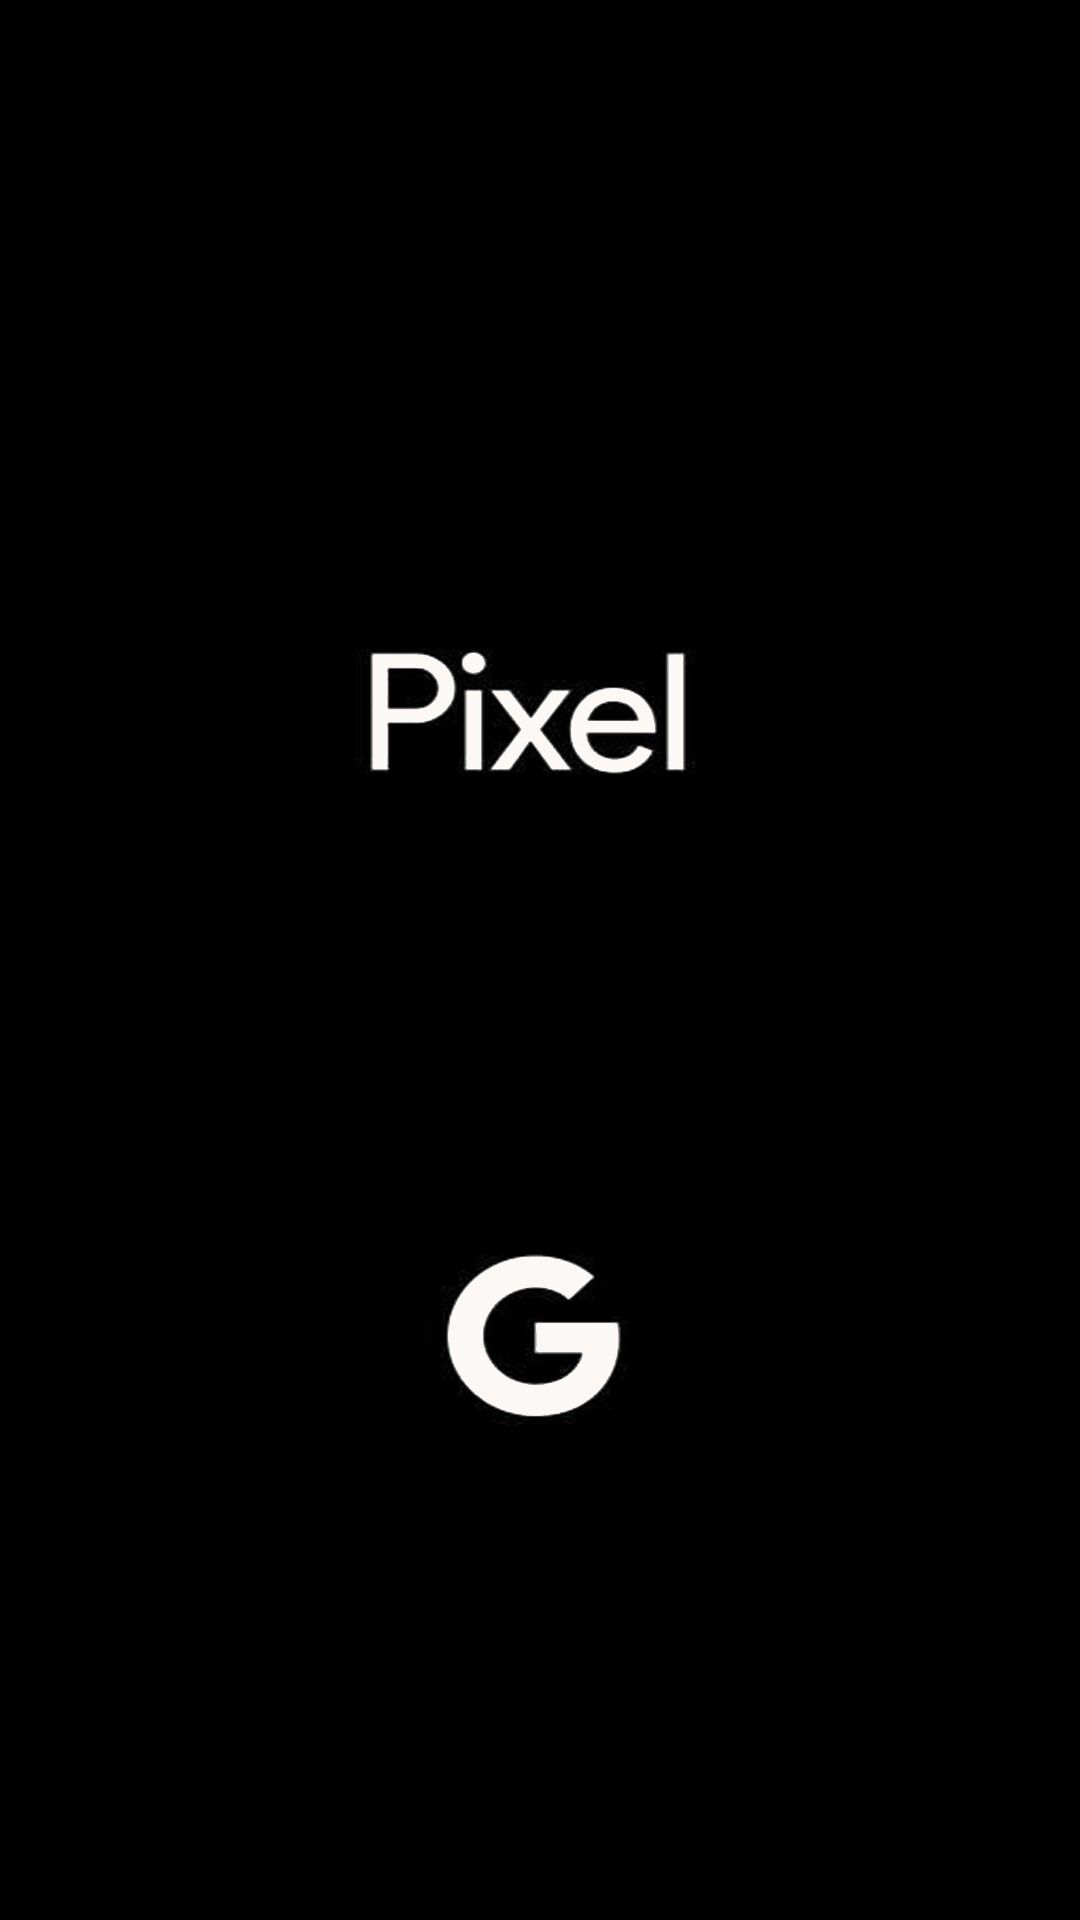 W White With Images Google Pixel Wallpaper Android Phone